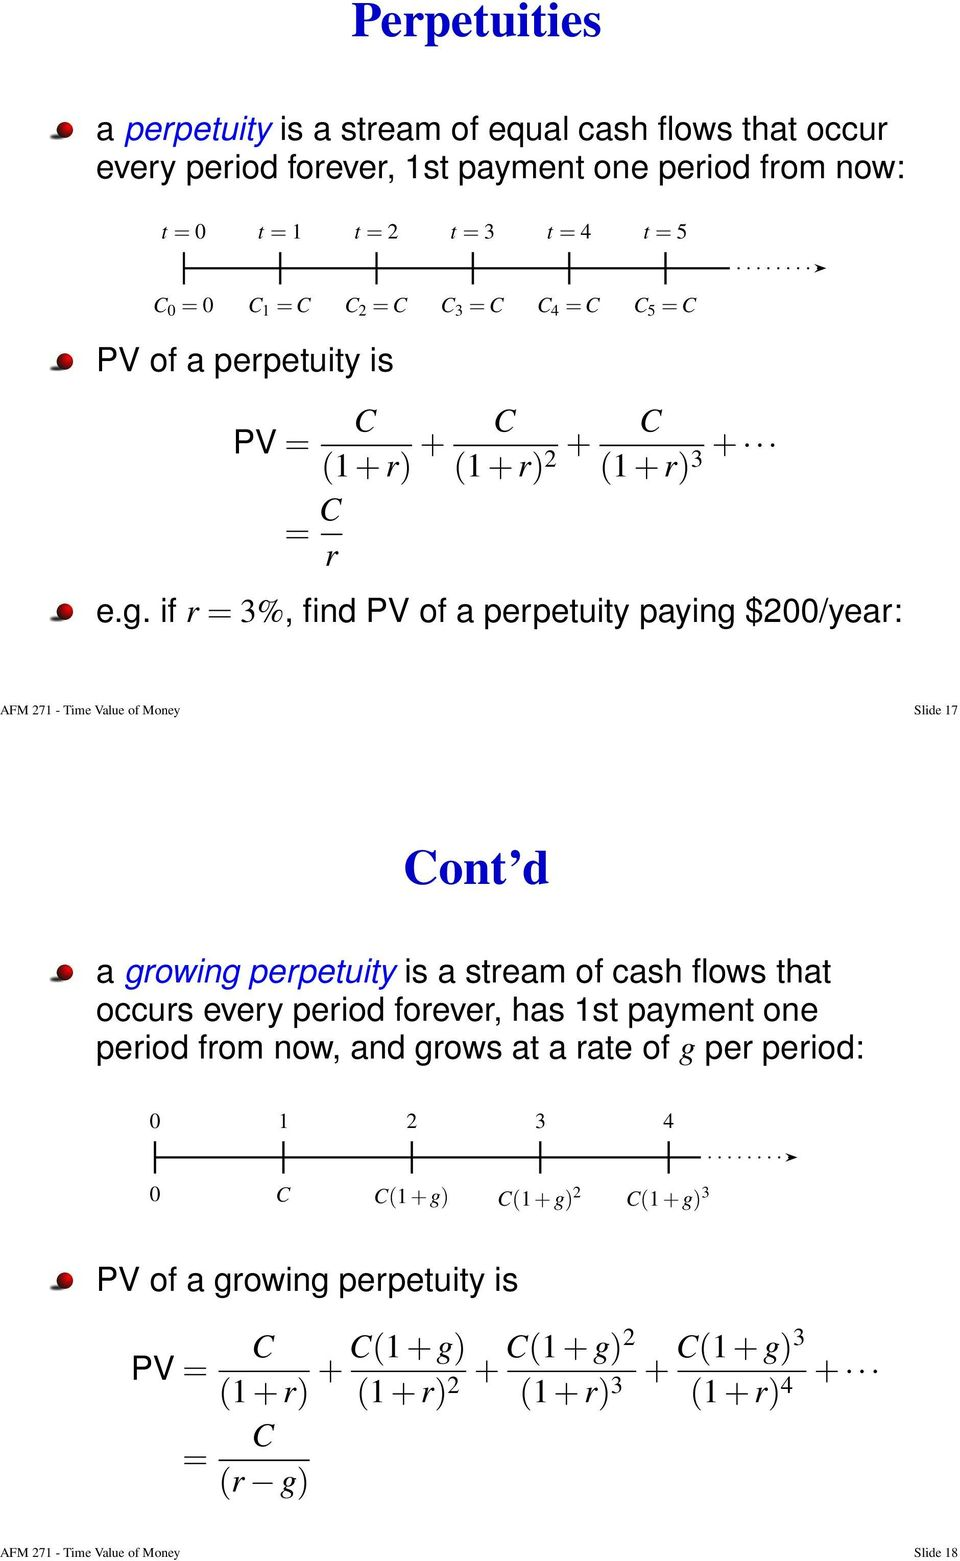 if r = 3%, find PV of a perpetuity paying $2/year: AFM 271 - Time Value of Money Slide 17 a growing perpetuity is a stream of cash flows that occurs every period forever, has 1st